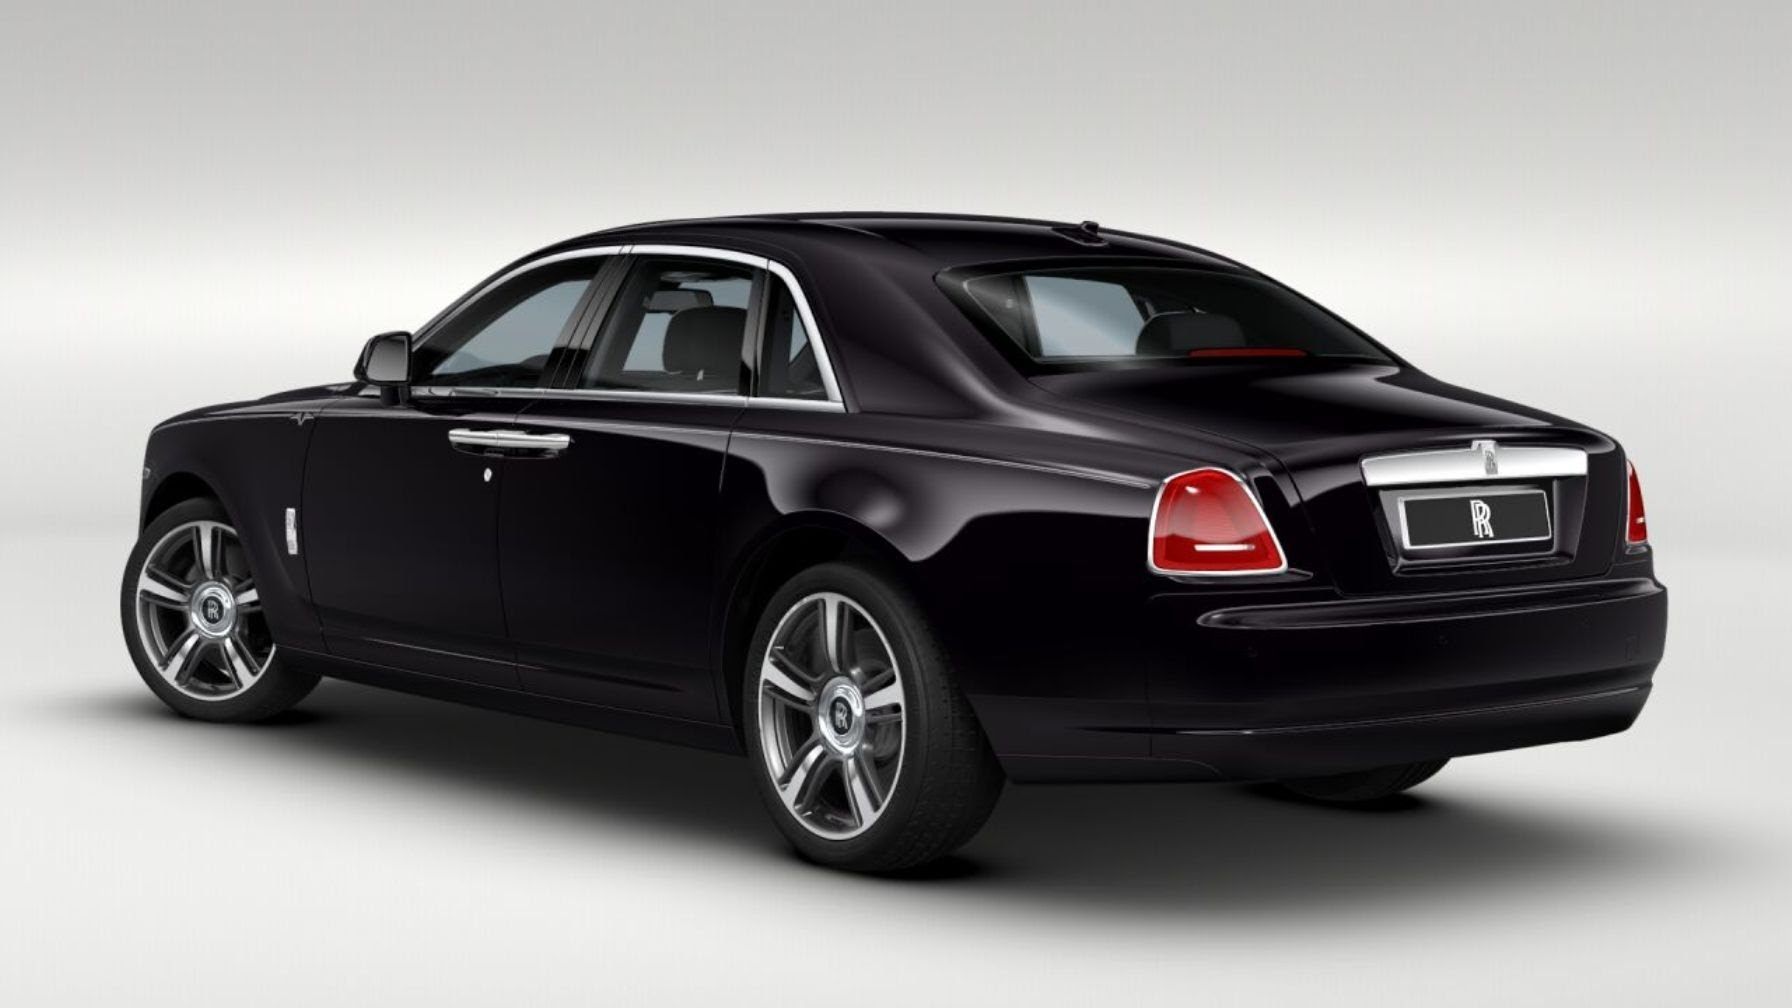 2015 Rolls Royce Ghost V Specification photo - 1